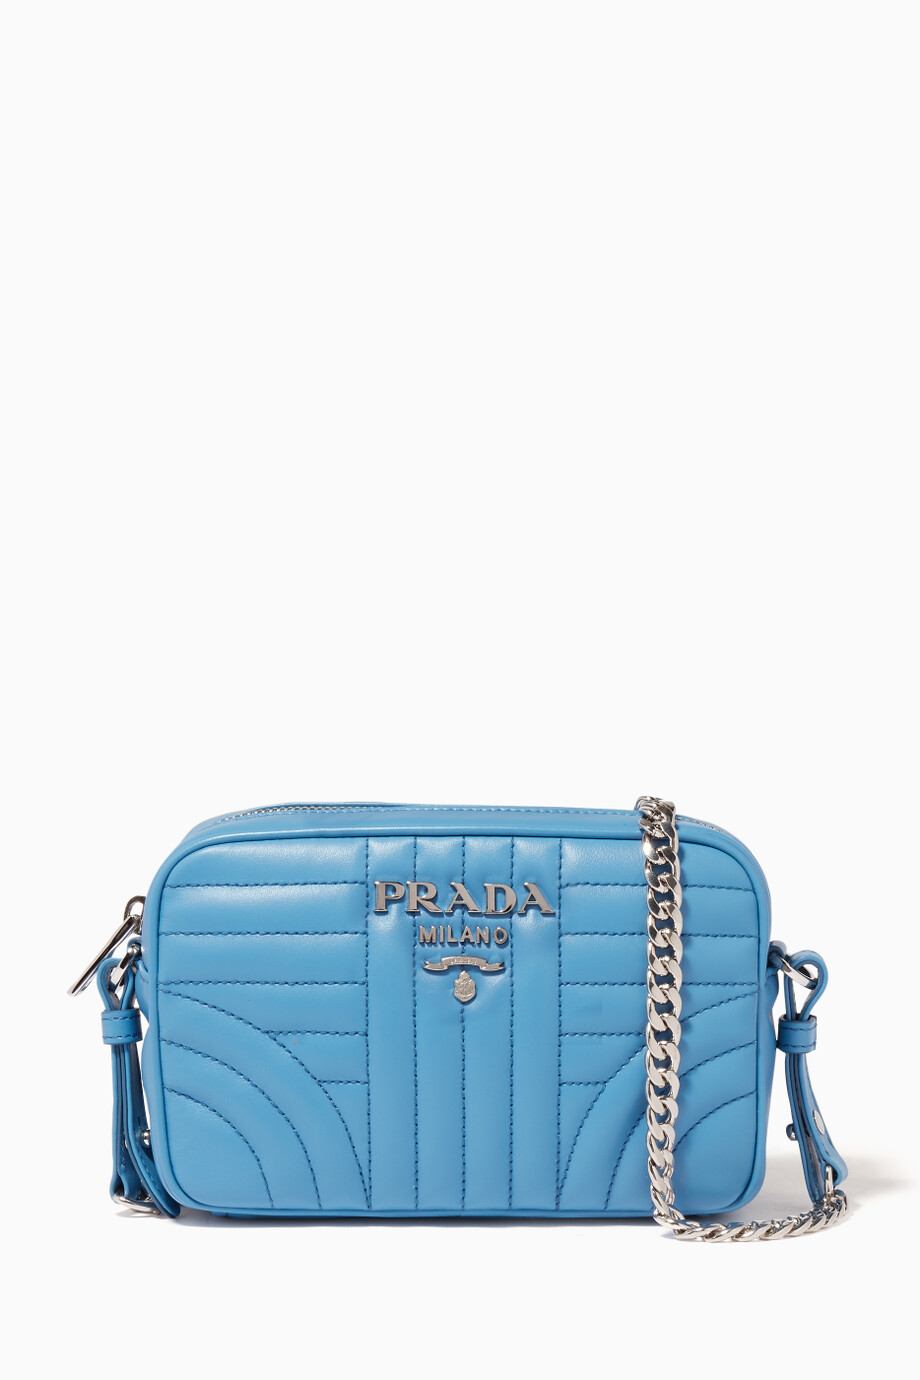 73c35515e4f8 Shop Prada Blue Blue Small Diagram-Quilted Camera Bag for Women ...